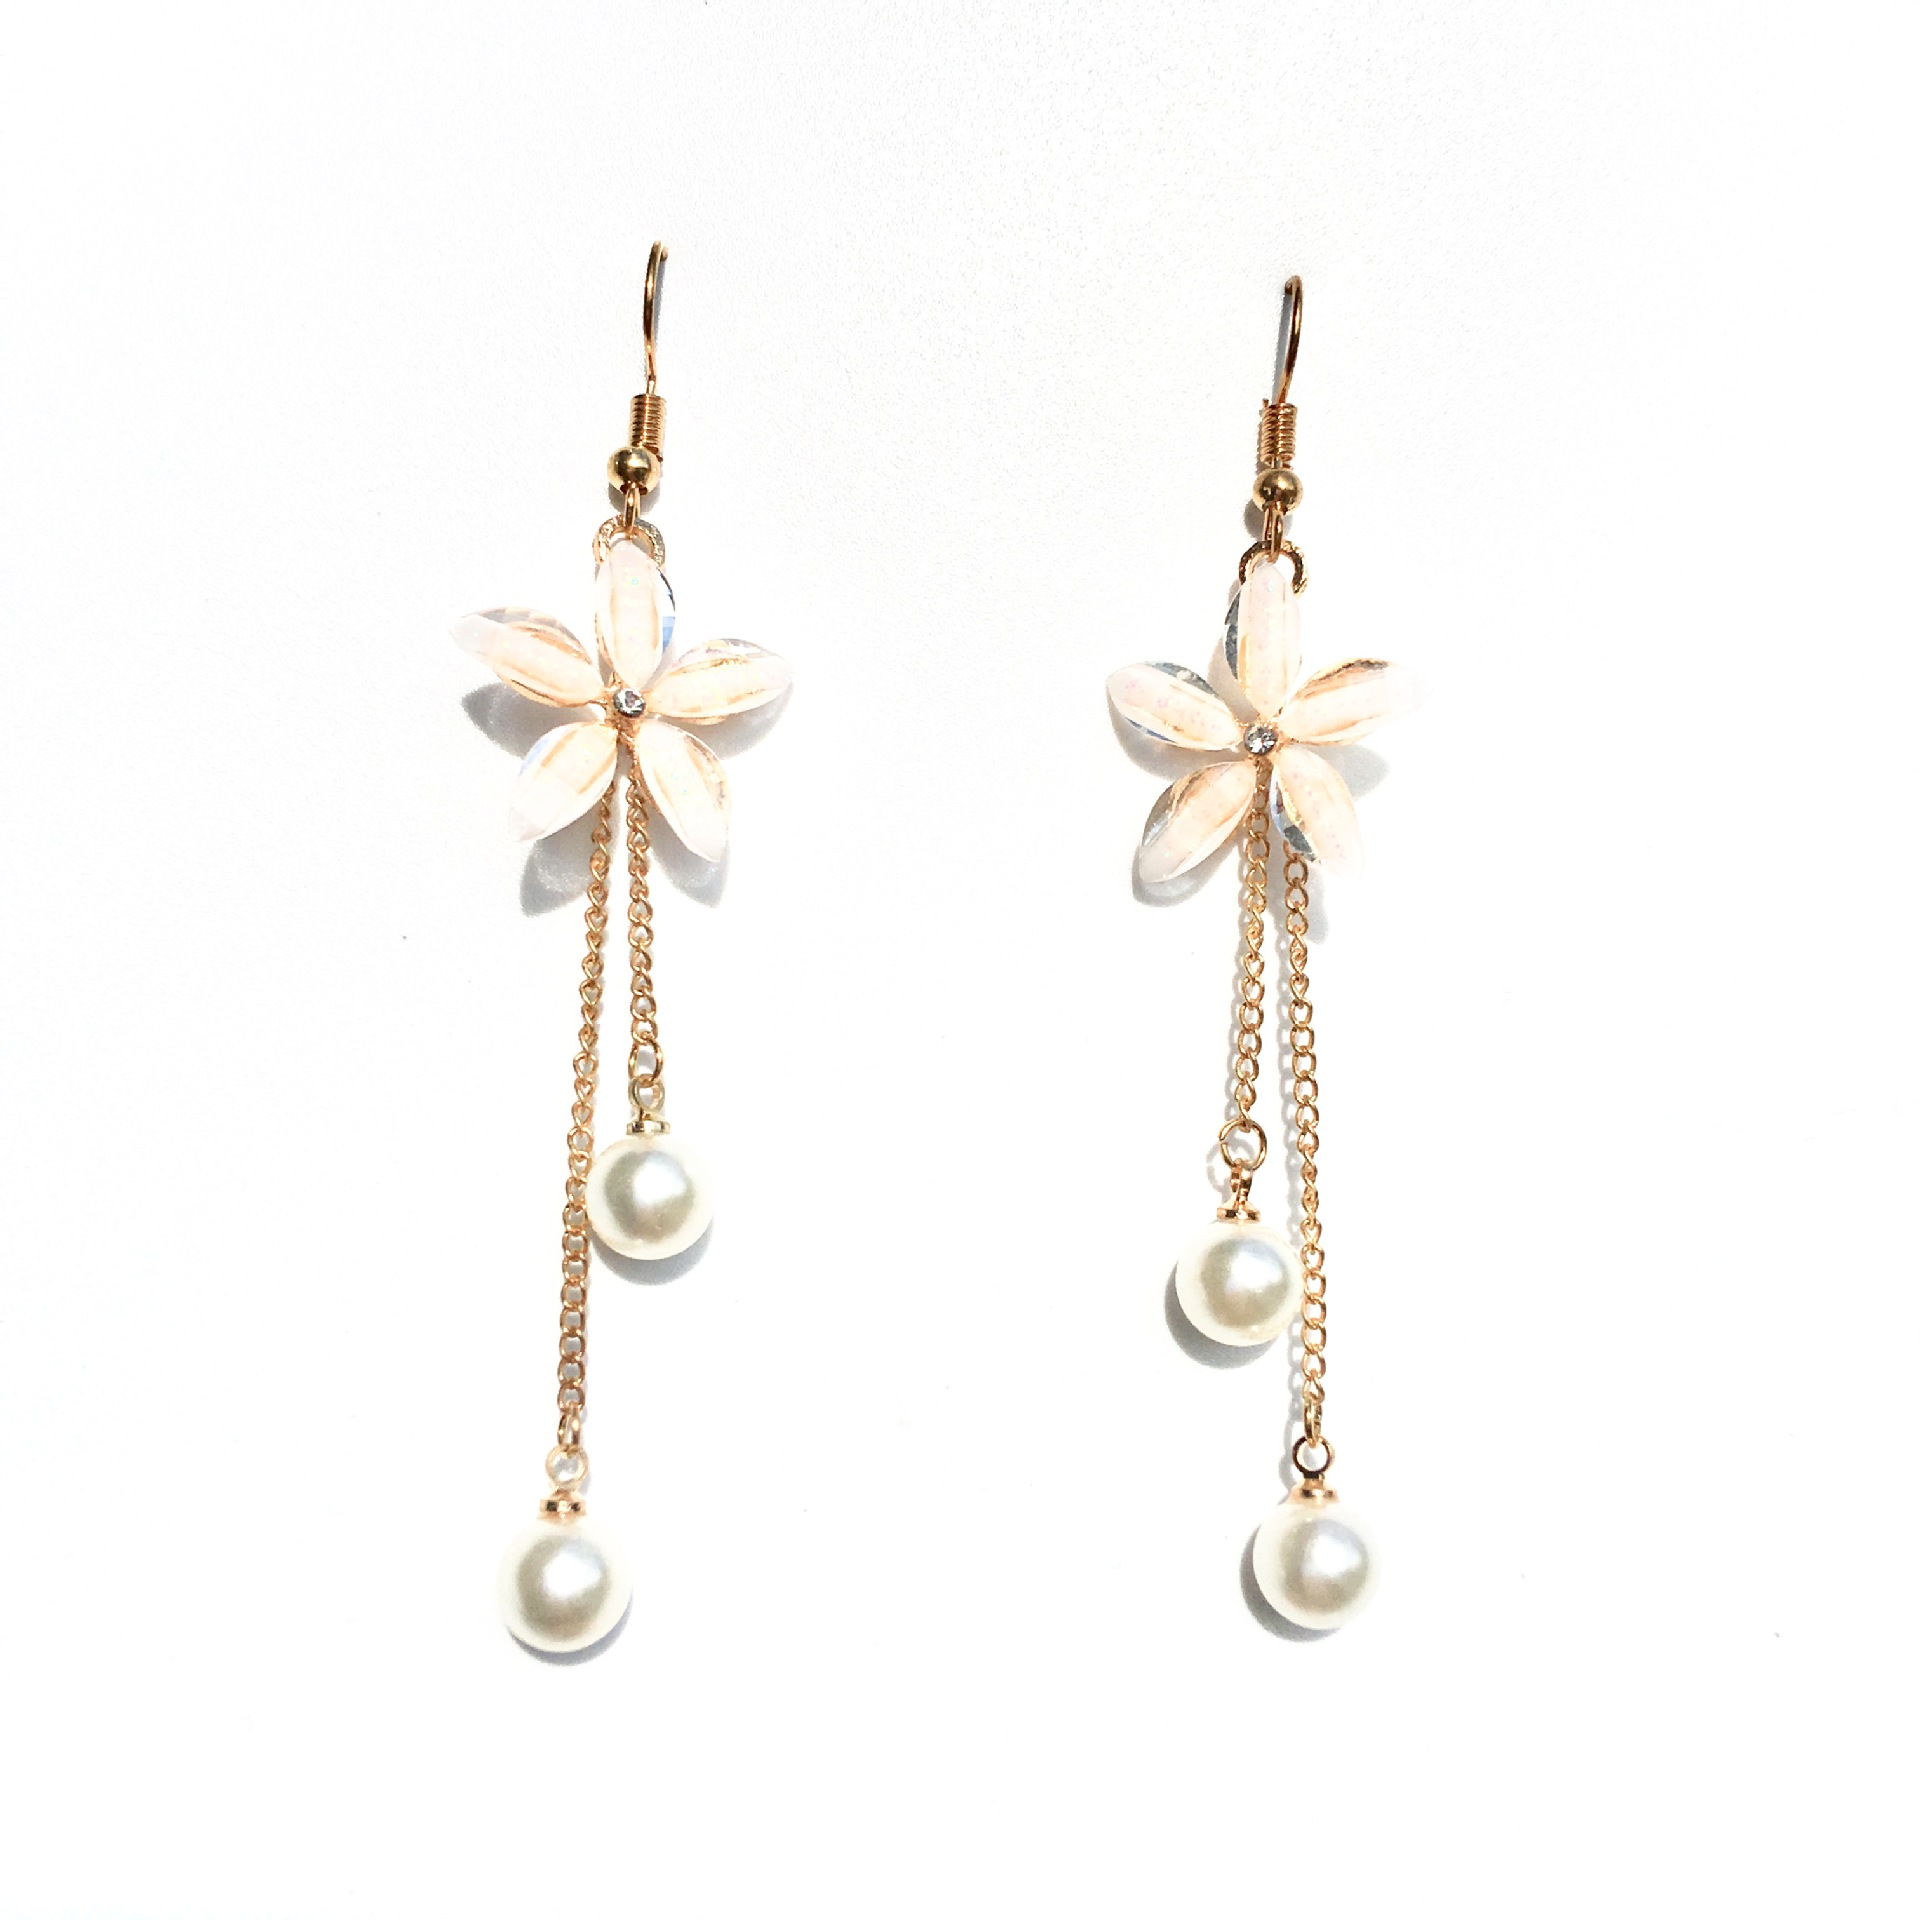 Flower Earrings 2019 Punk Fashion New Earrings Lady Wild Chain Pearl Crystal Flower Earrings Gift Wholesale Ladies Earrings